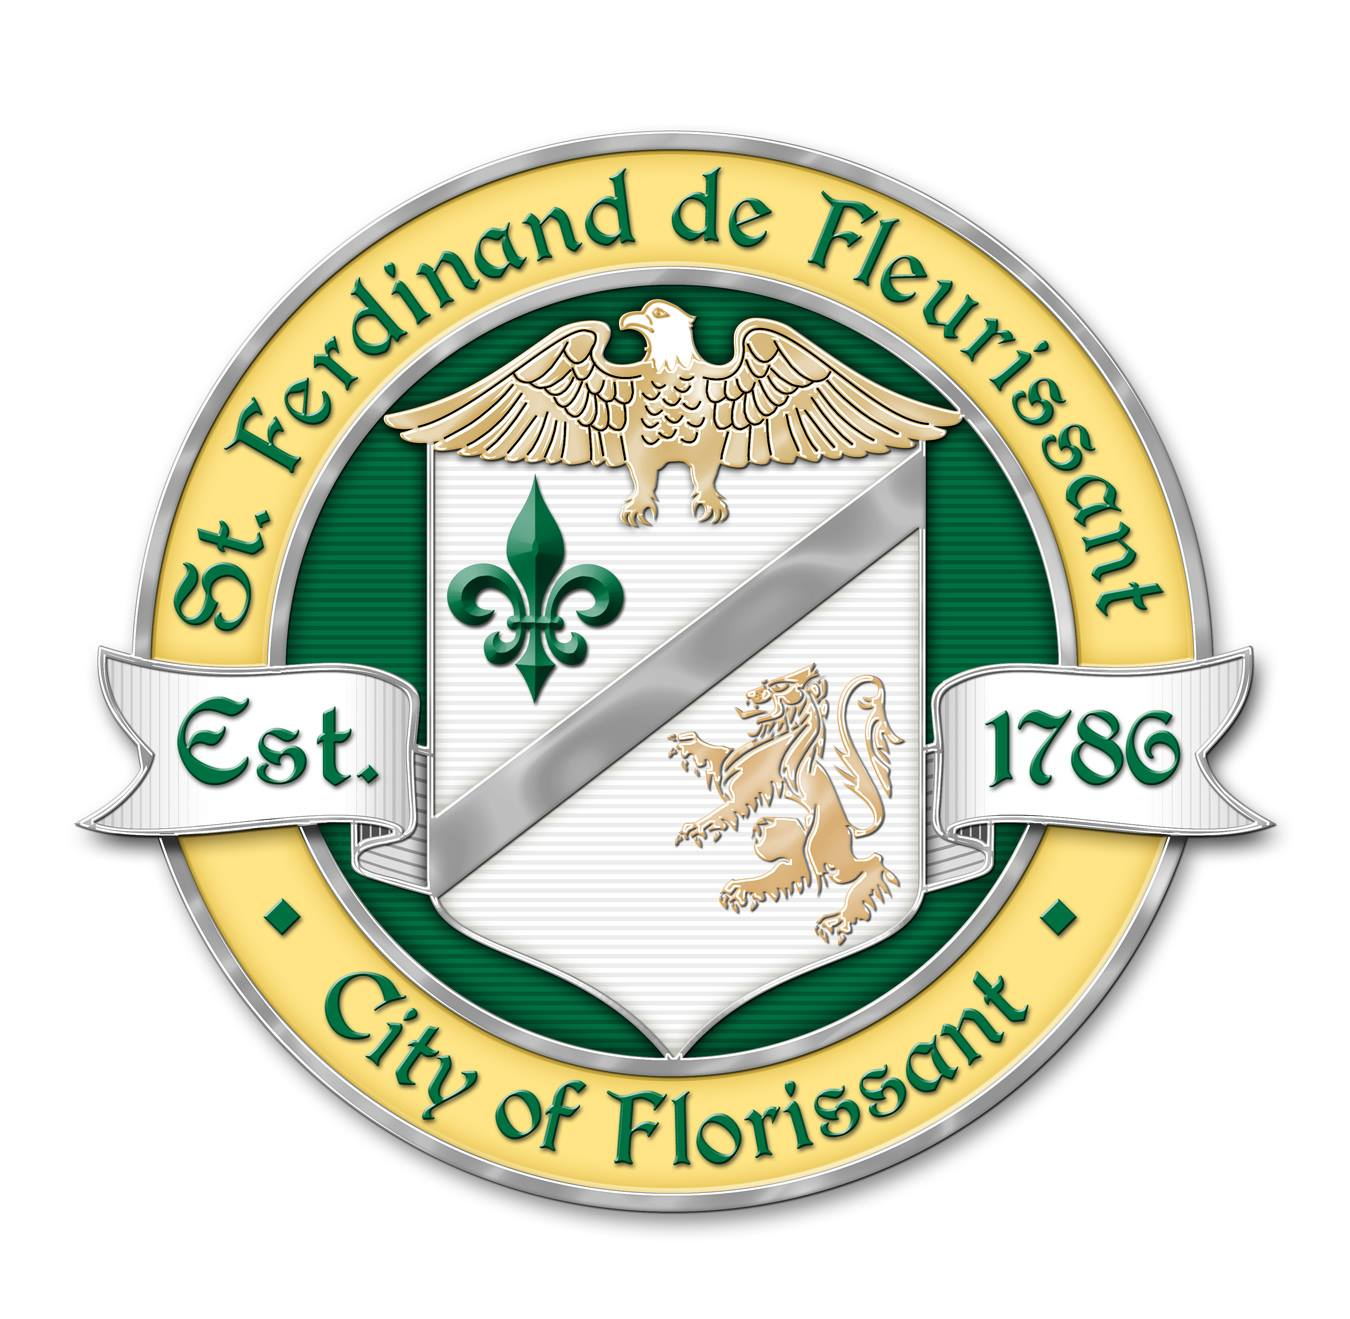 City of Florissant